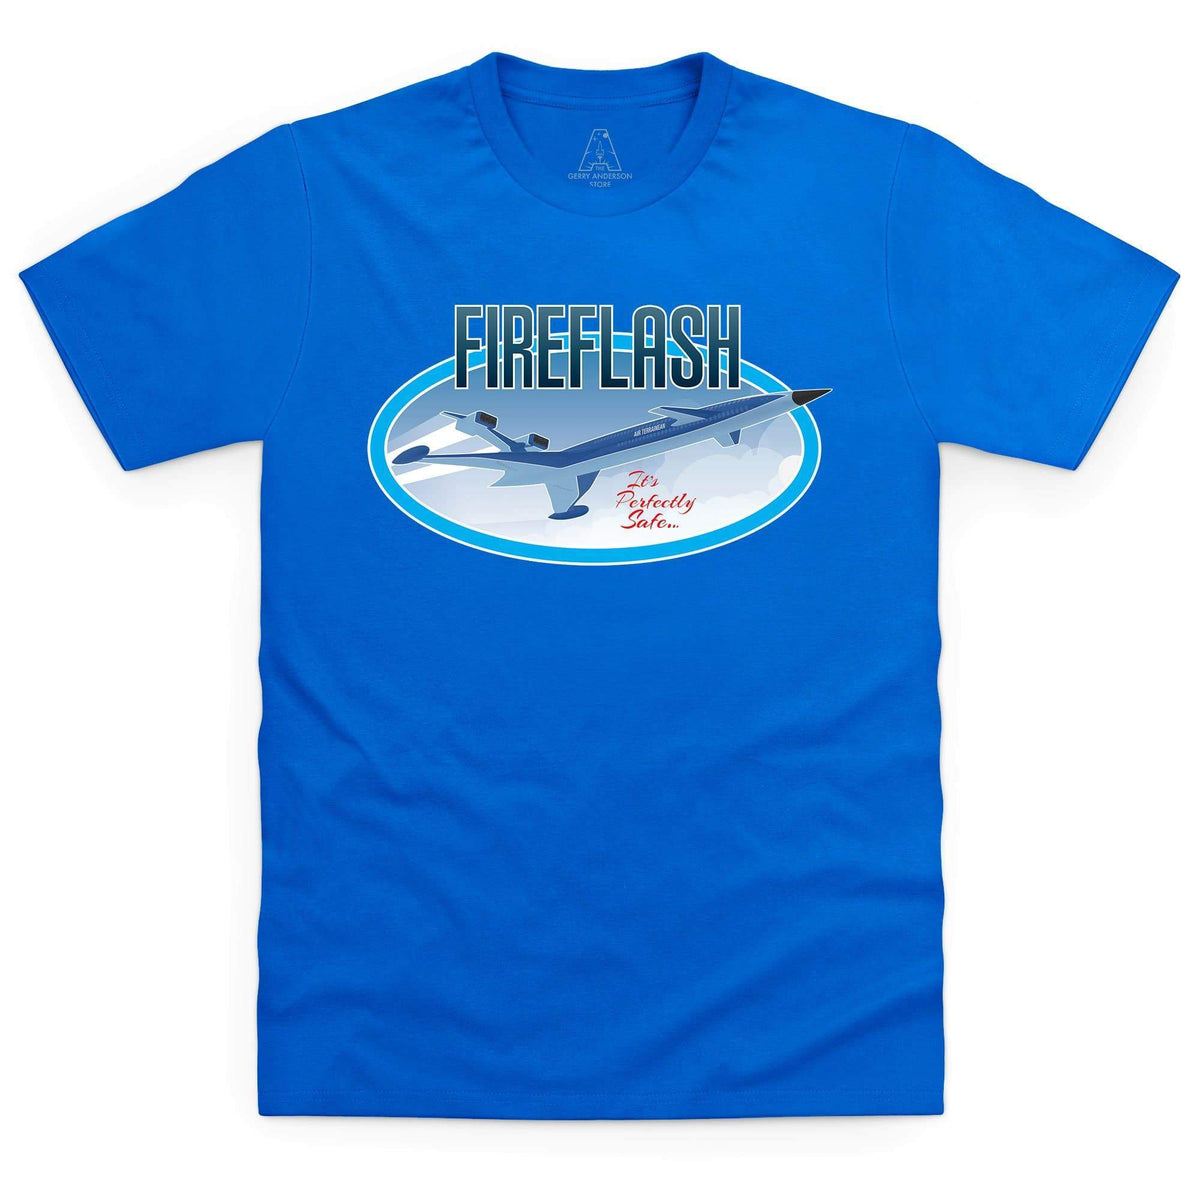 Thunderbirds Fireflash Men's T-Shirt [Official & Exclusive] - The Gerry Anderson Store